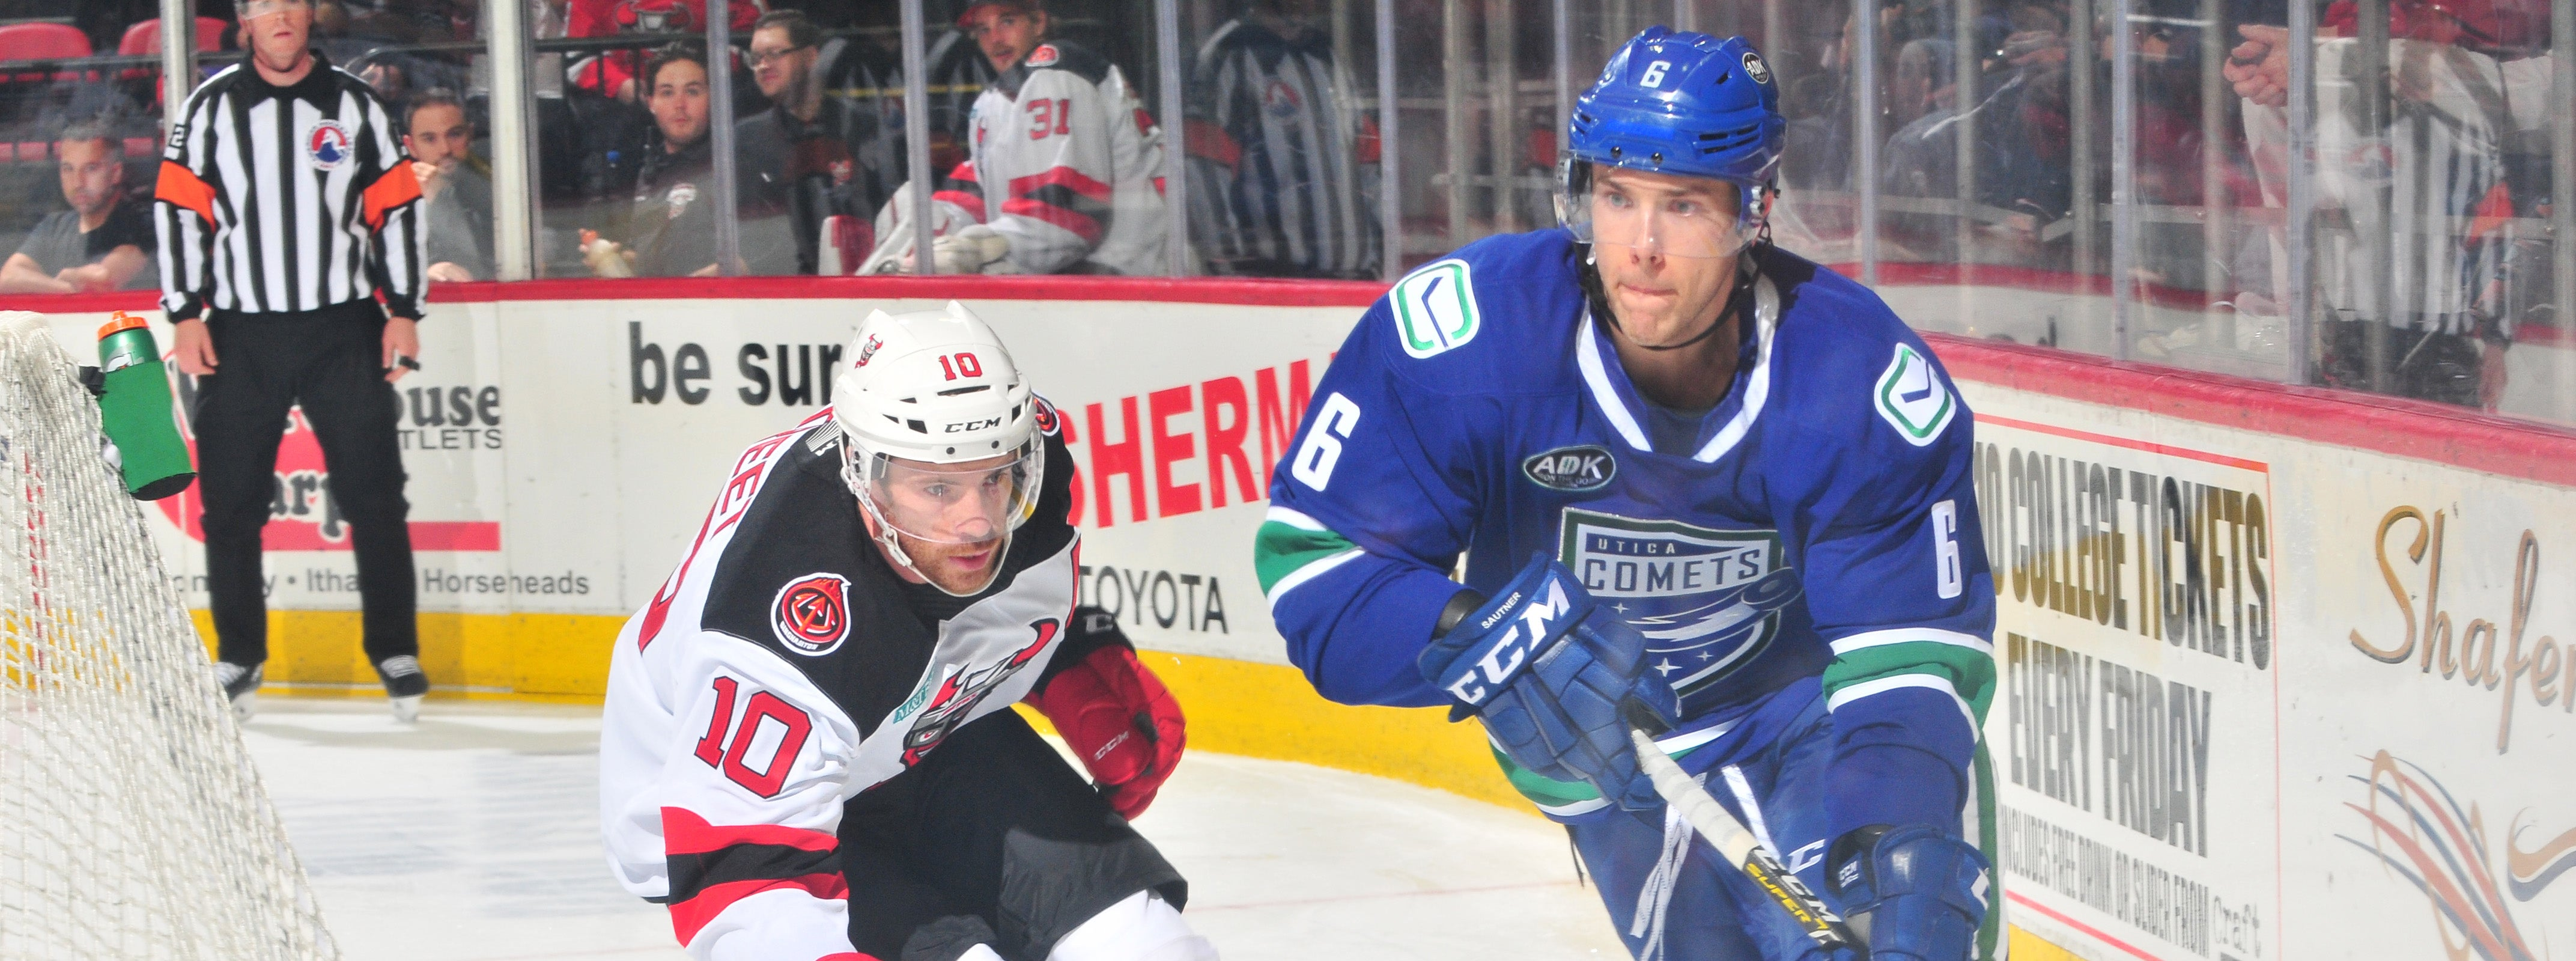 SECOND PERIOD SURGE LIFTS COMETS TO OPENING NIGHT WIN